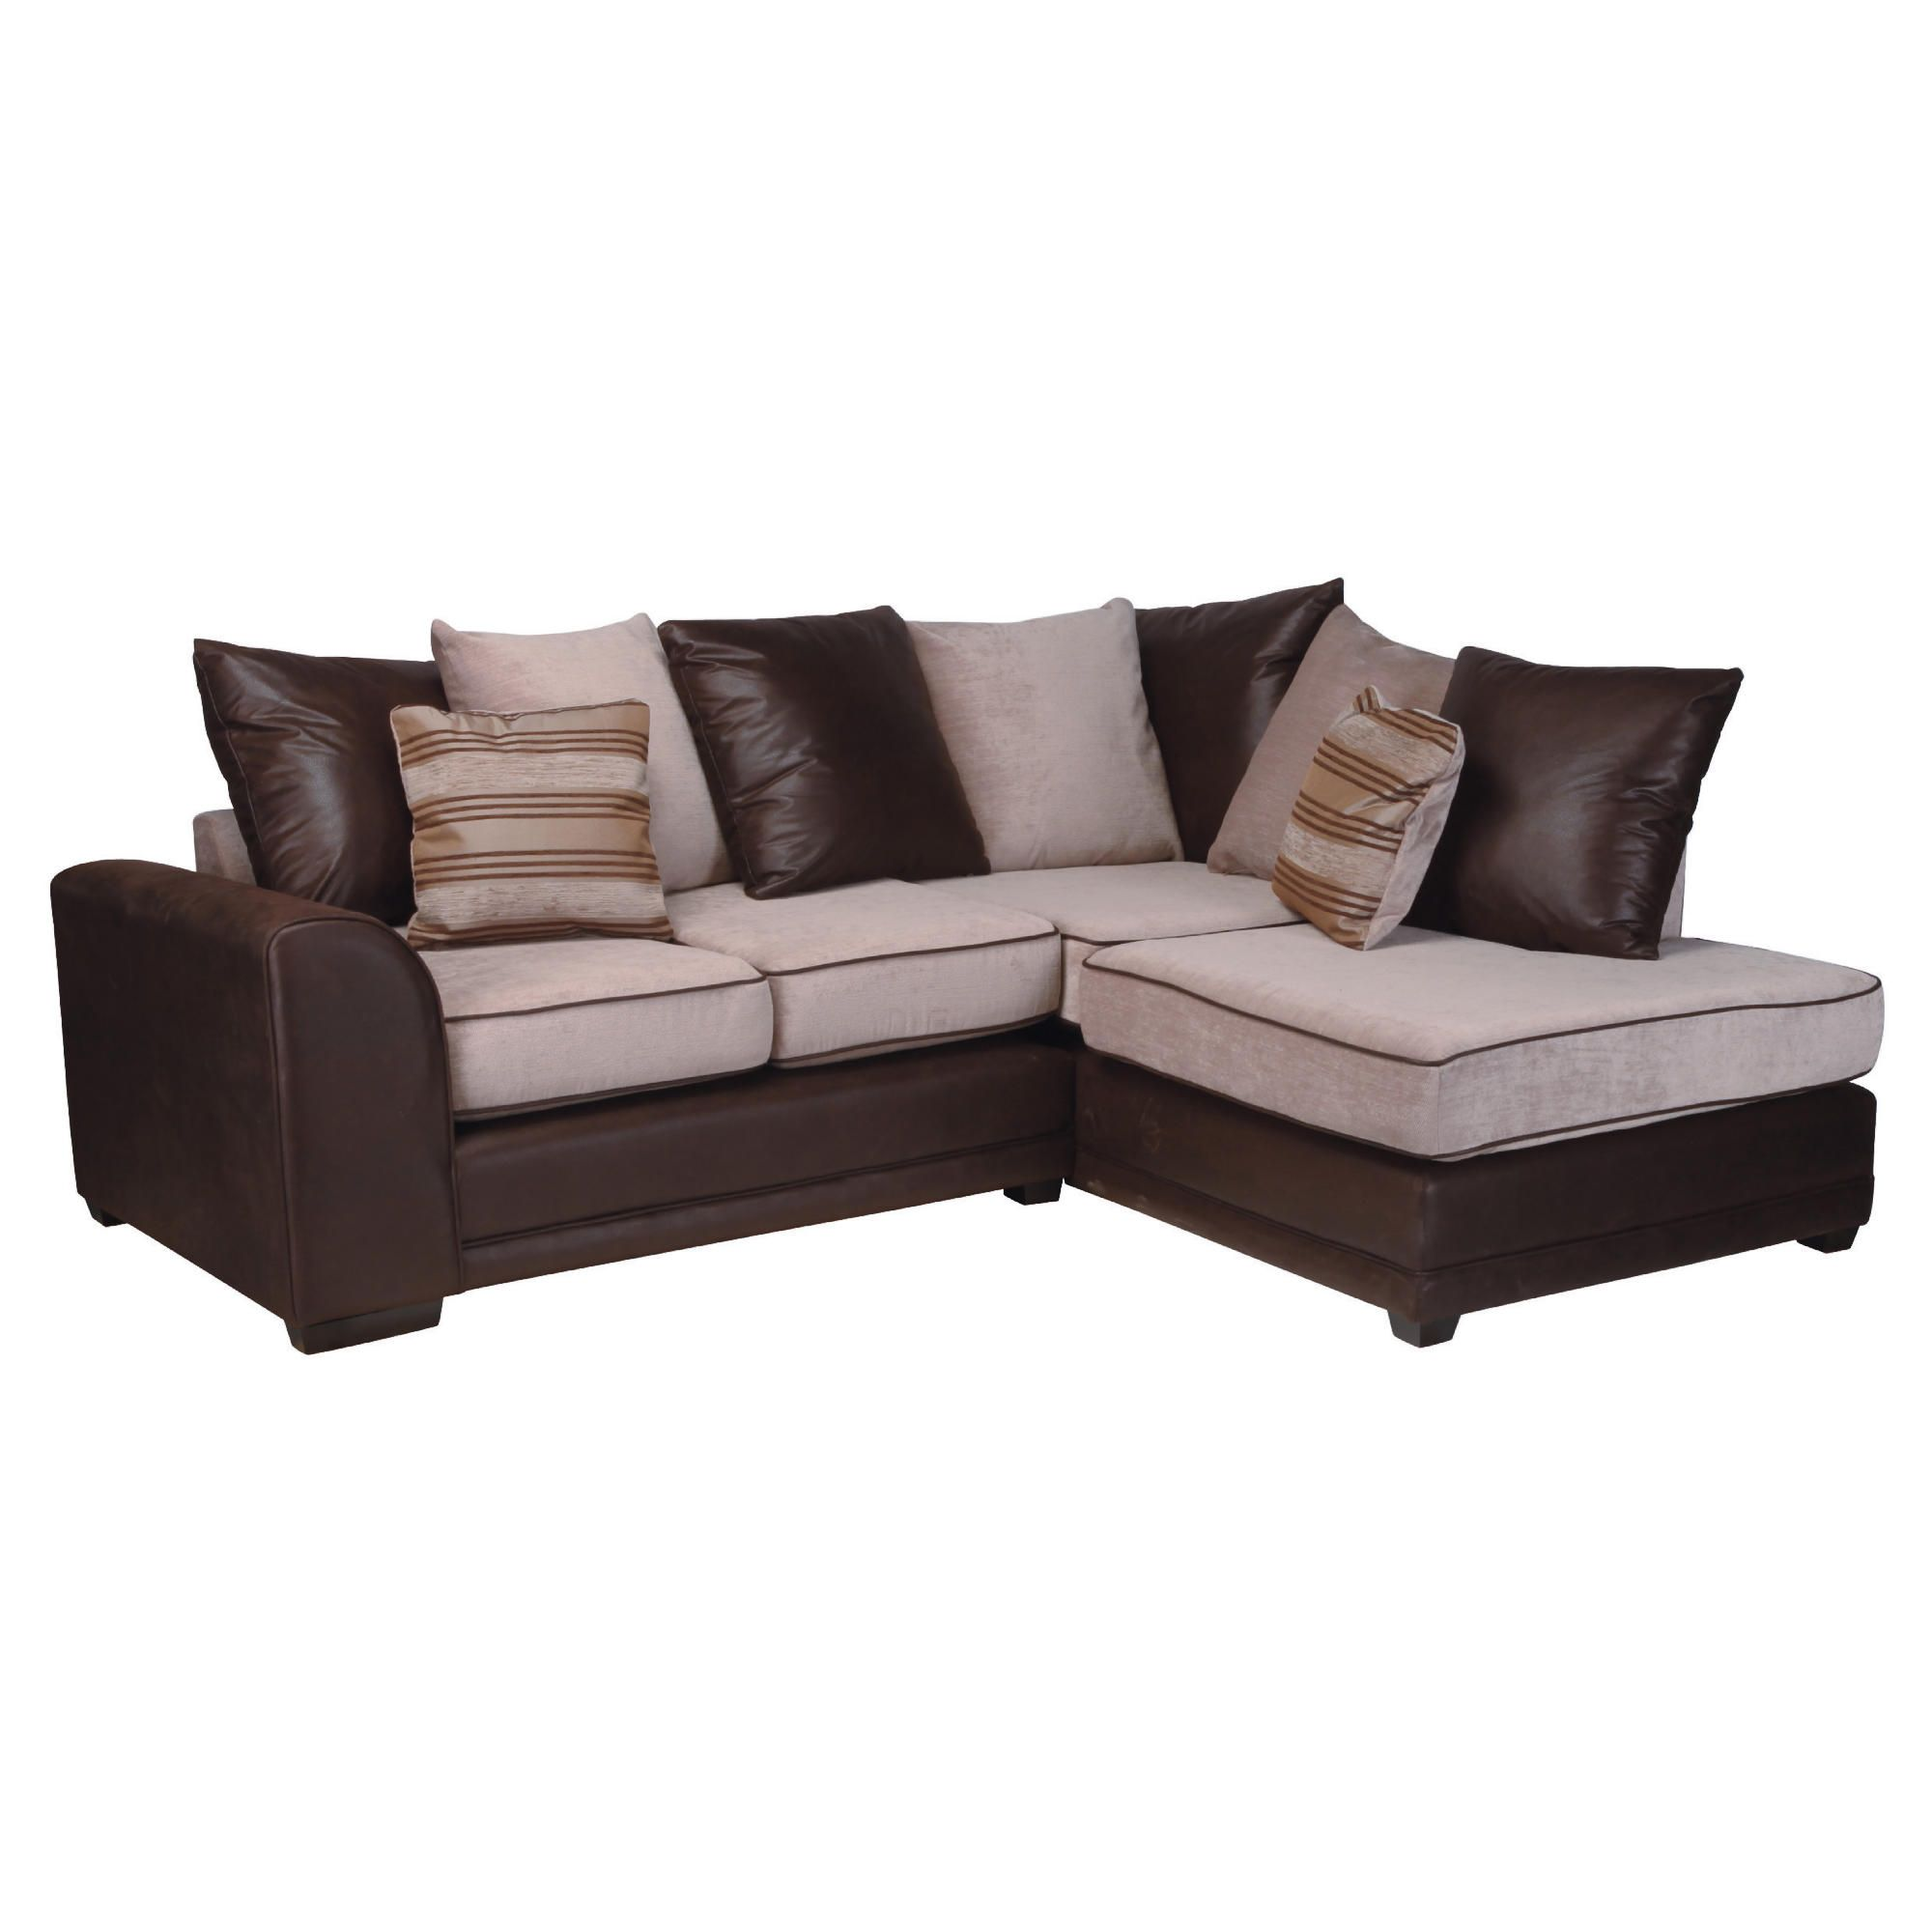 Inca Leather Effect & Fabric Right Hand Facing Corner Sofa, Mocha at Tesco Direct